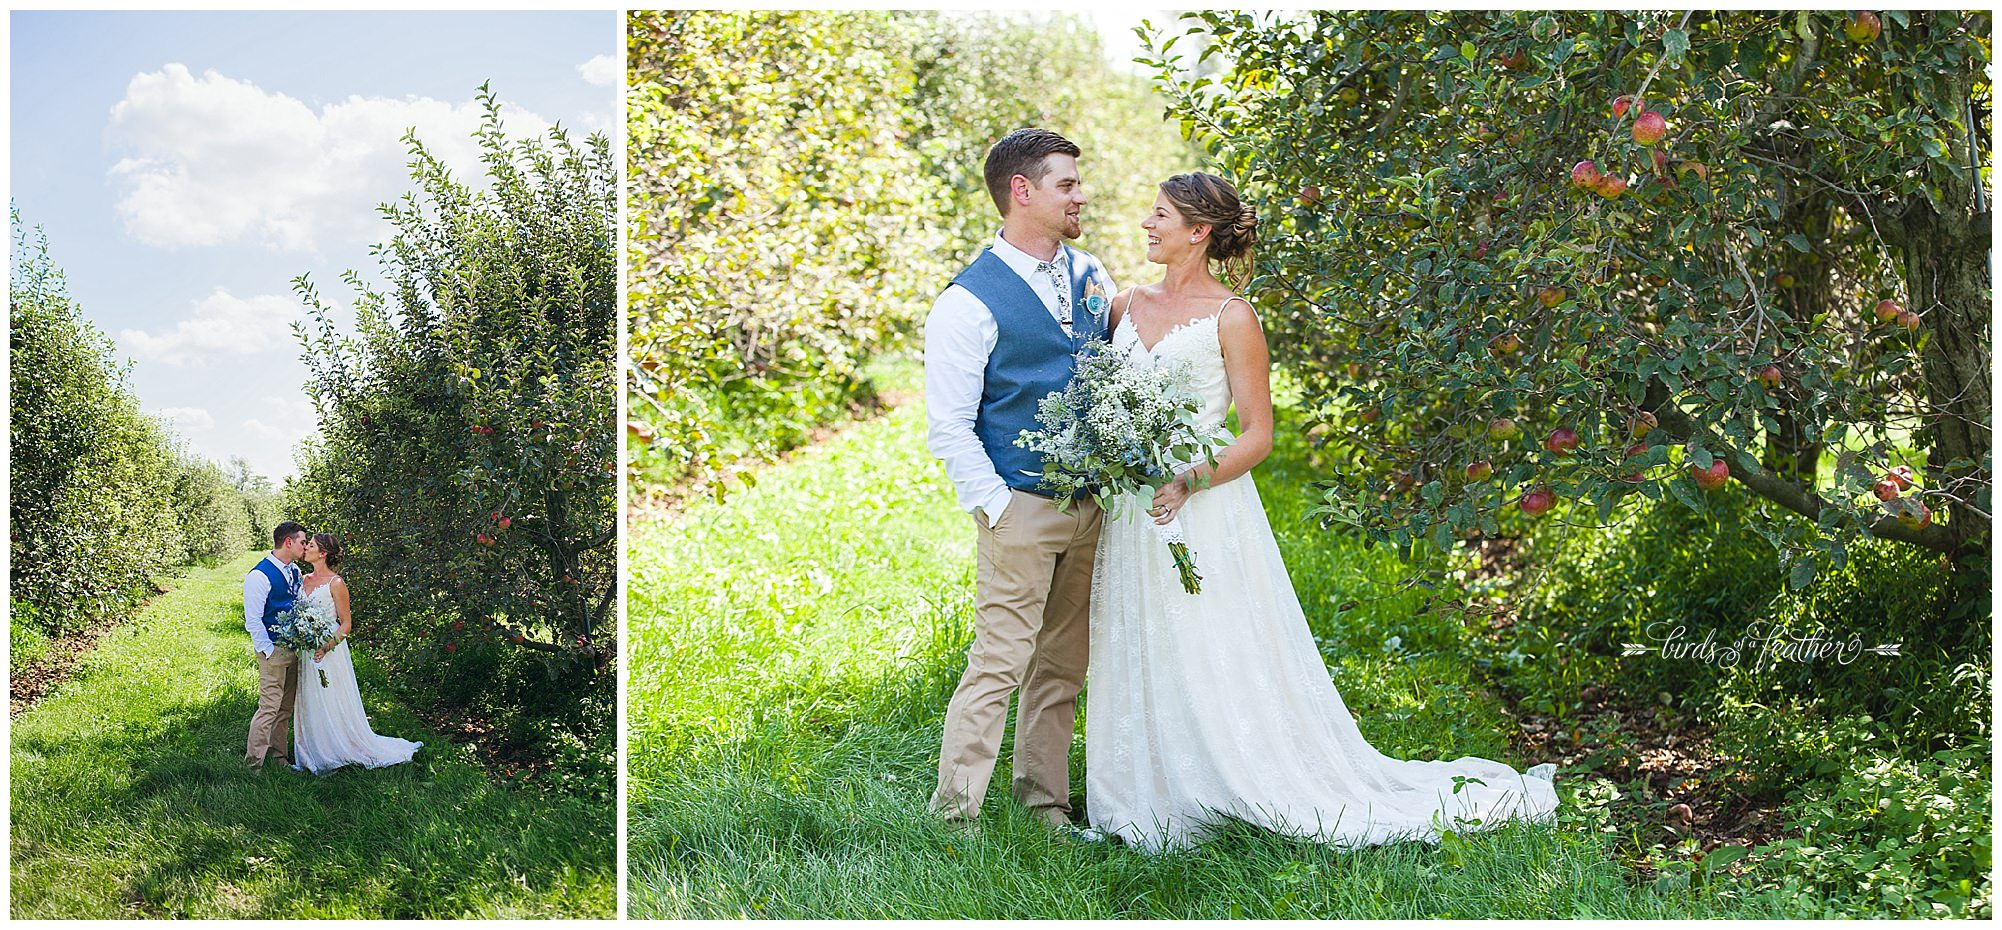 Birds of a Feather Photography Rodale Institute Kutztown Pa Wedding Photographer 12